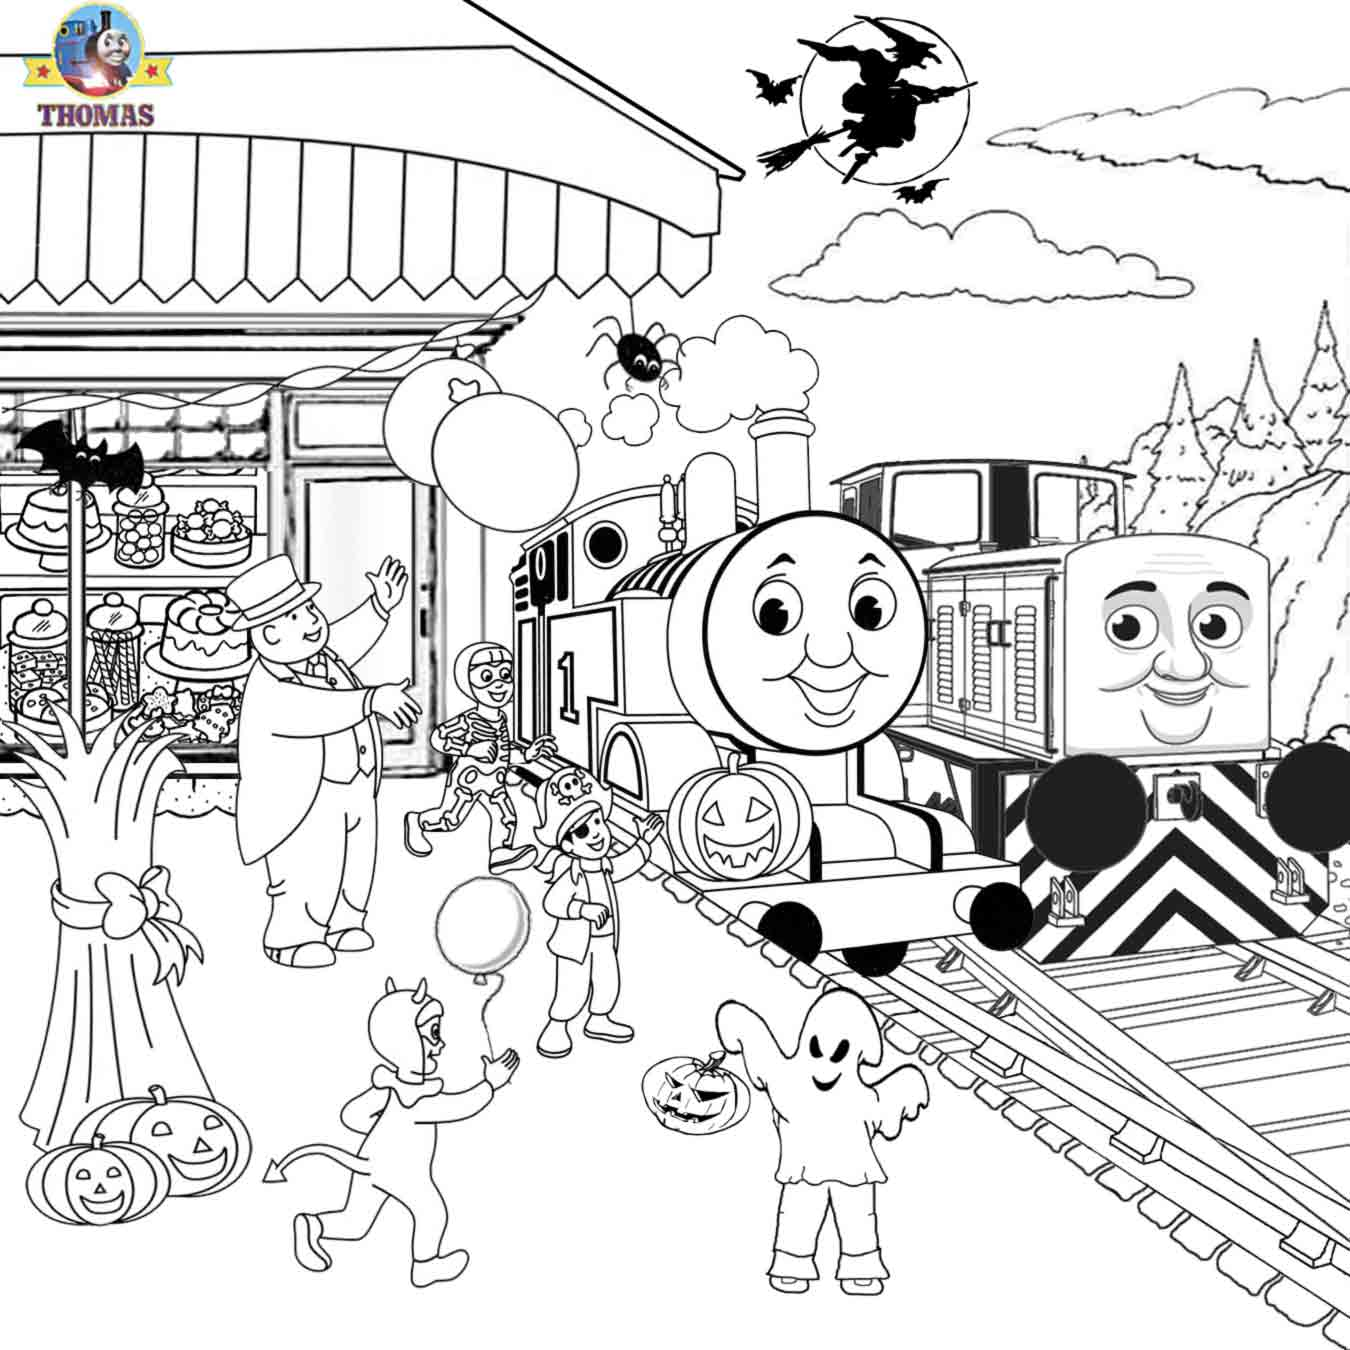 Free printable halloween ideas kids activities thomas for Thomas the train christmas coloring pages